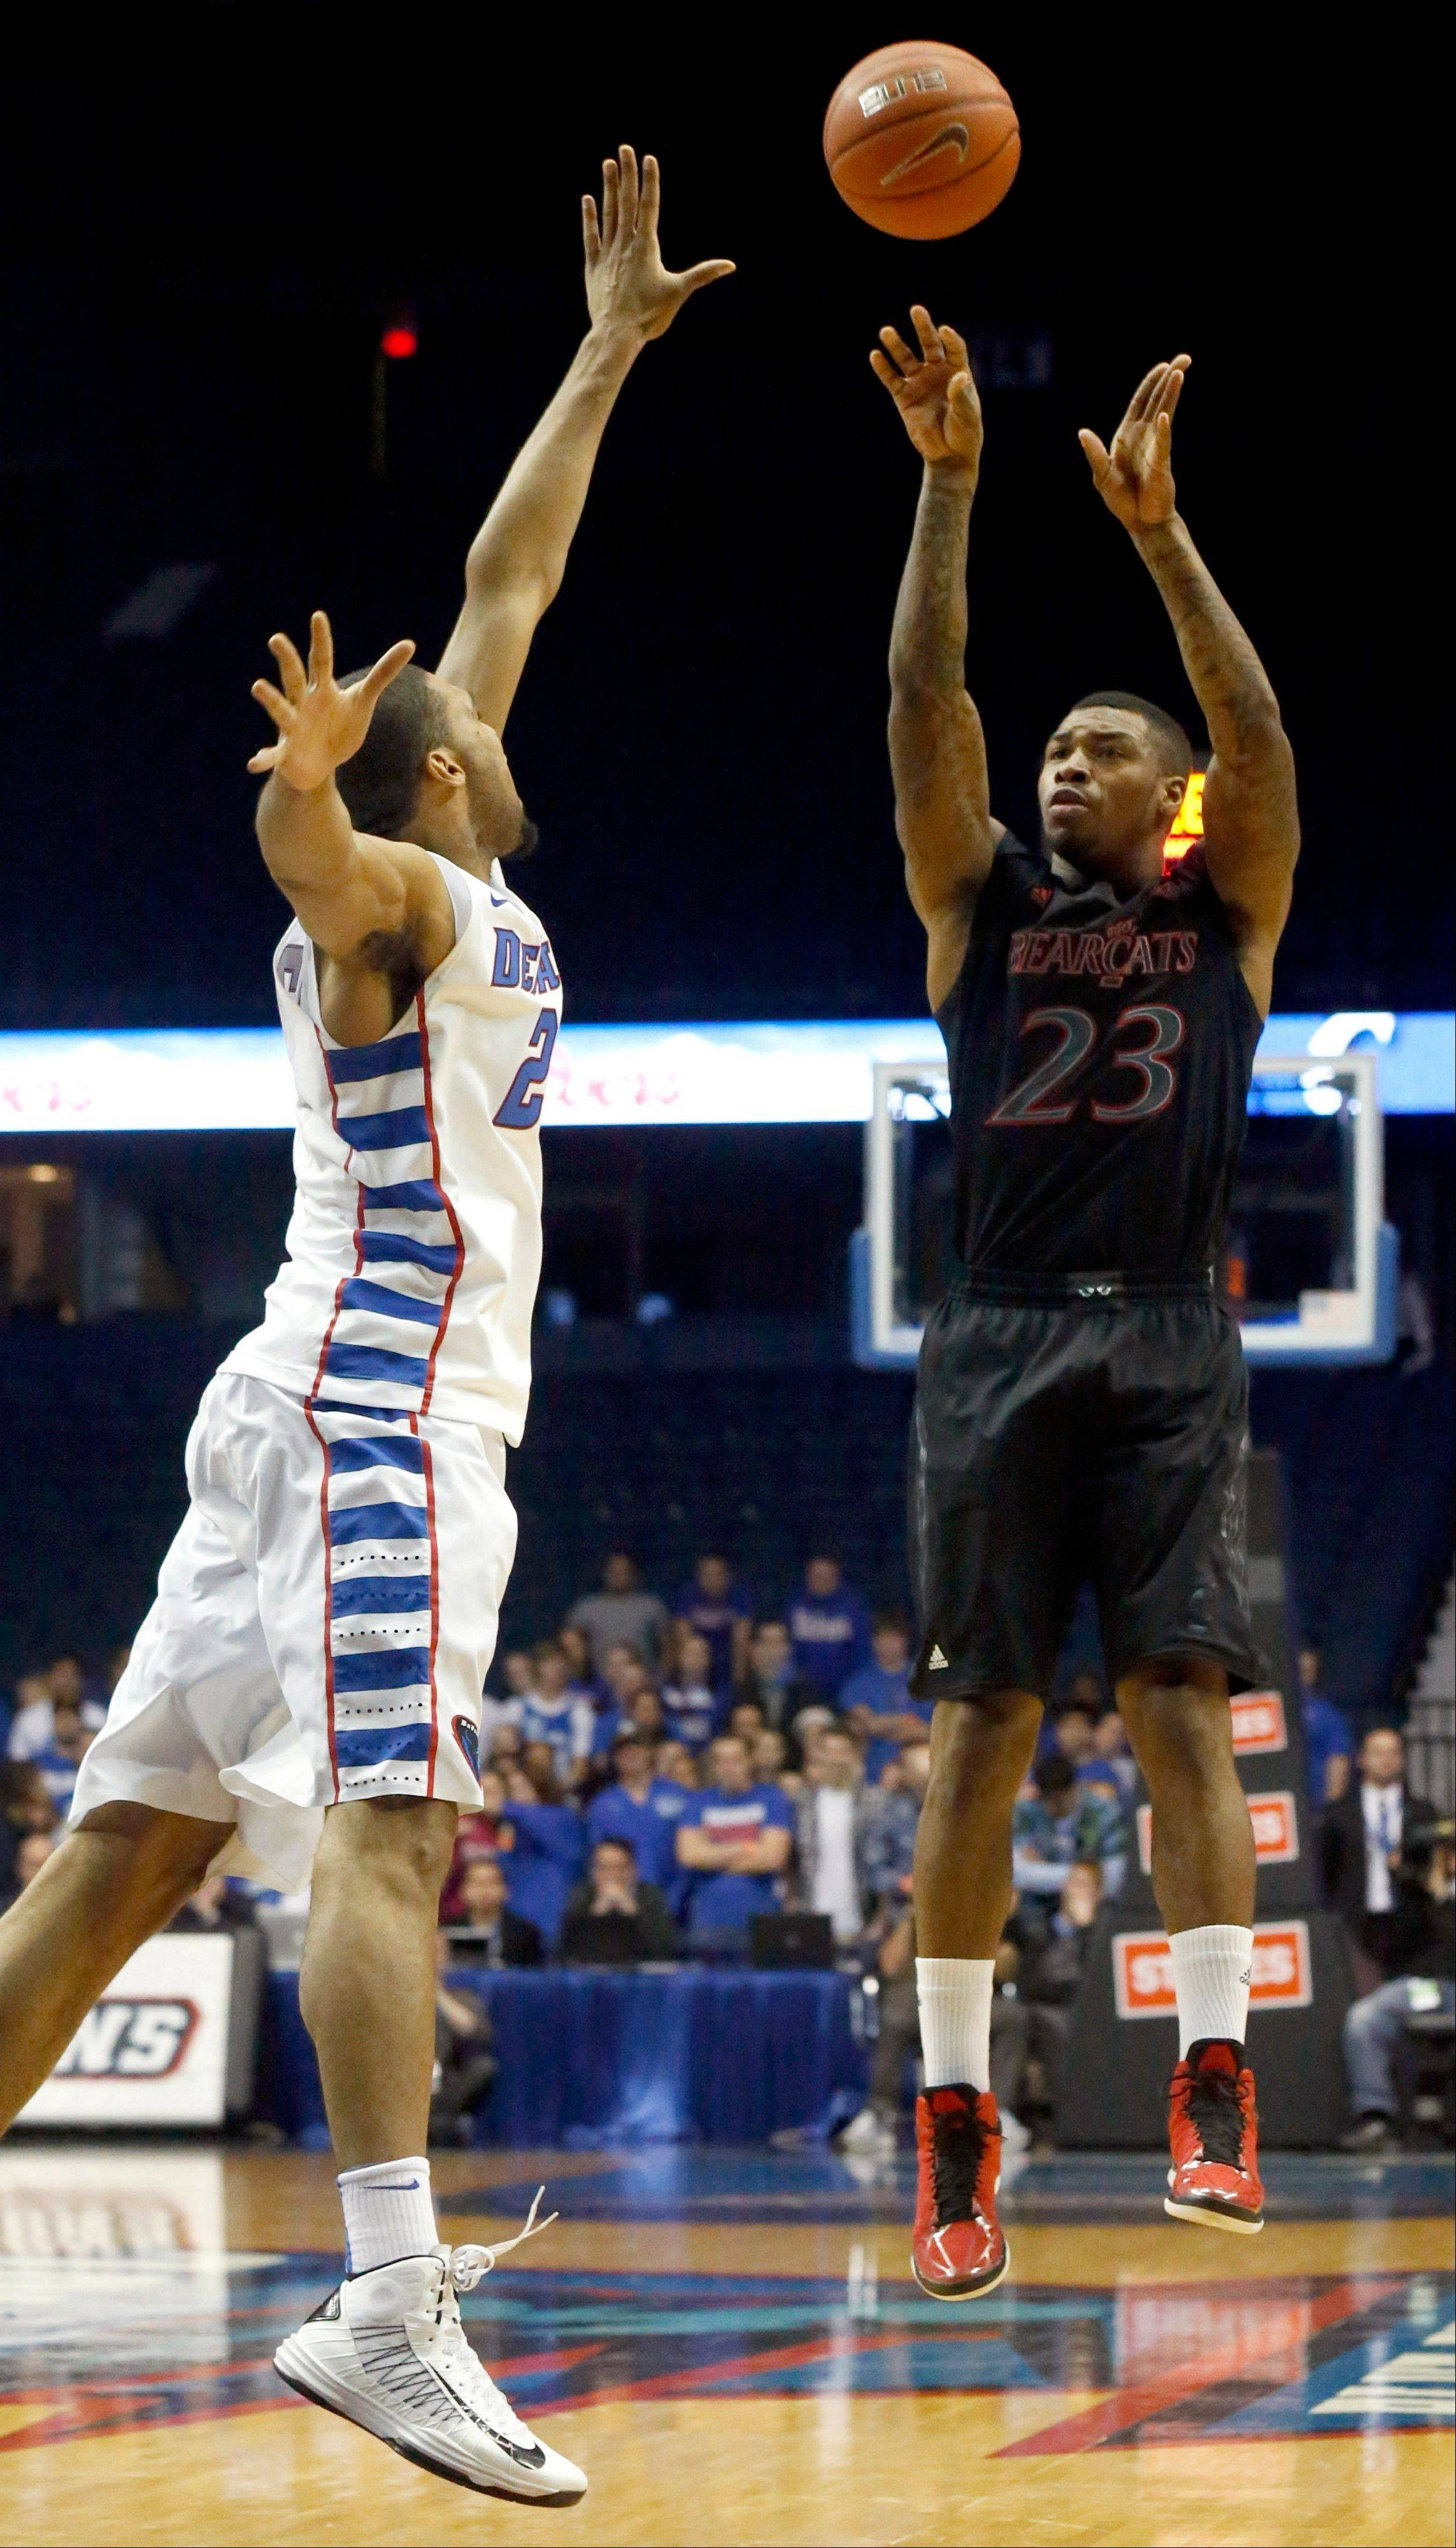 Cincinnati guard Sean Kilpatrick (23) shoots over DePaul forward Donnavan Kirk during the first half of an NCAA college basketball game, Tuesday, Jan. 15, 2013, in Rosemont, Ill. (AP Photo/Charles Rex Arbogast)